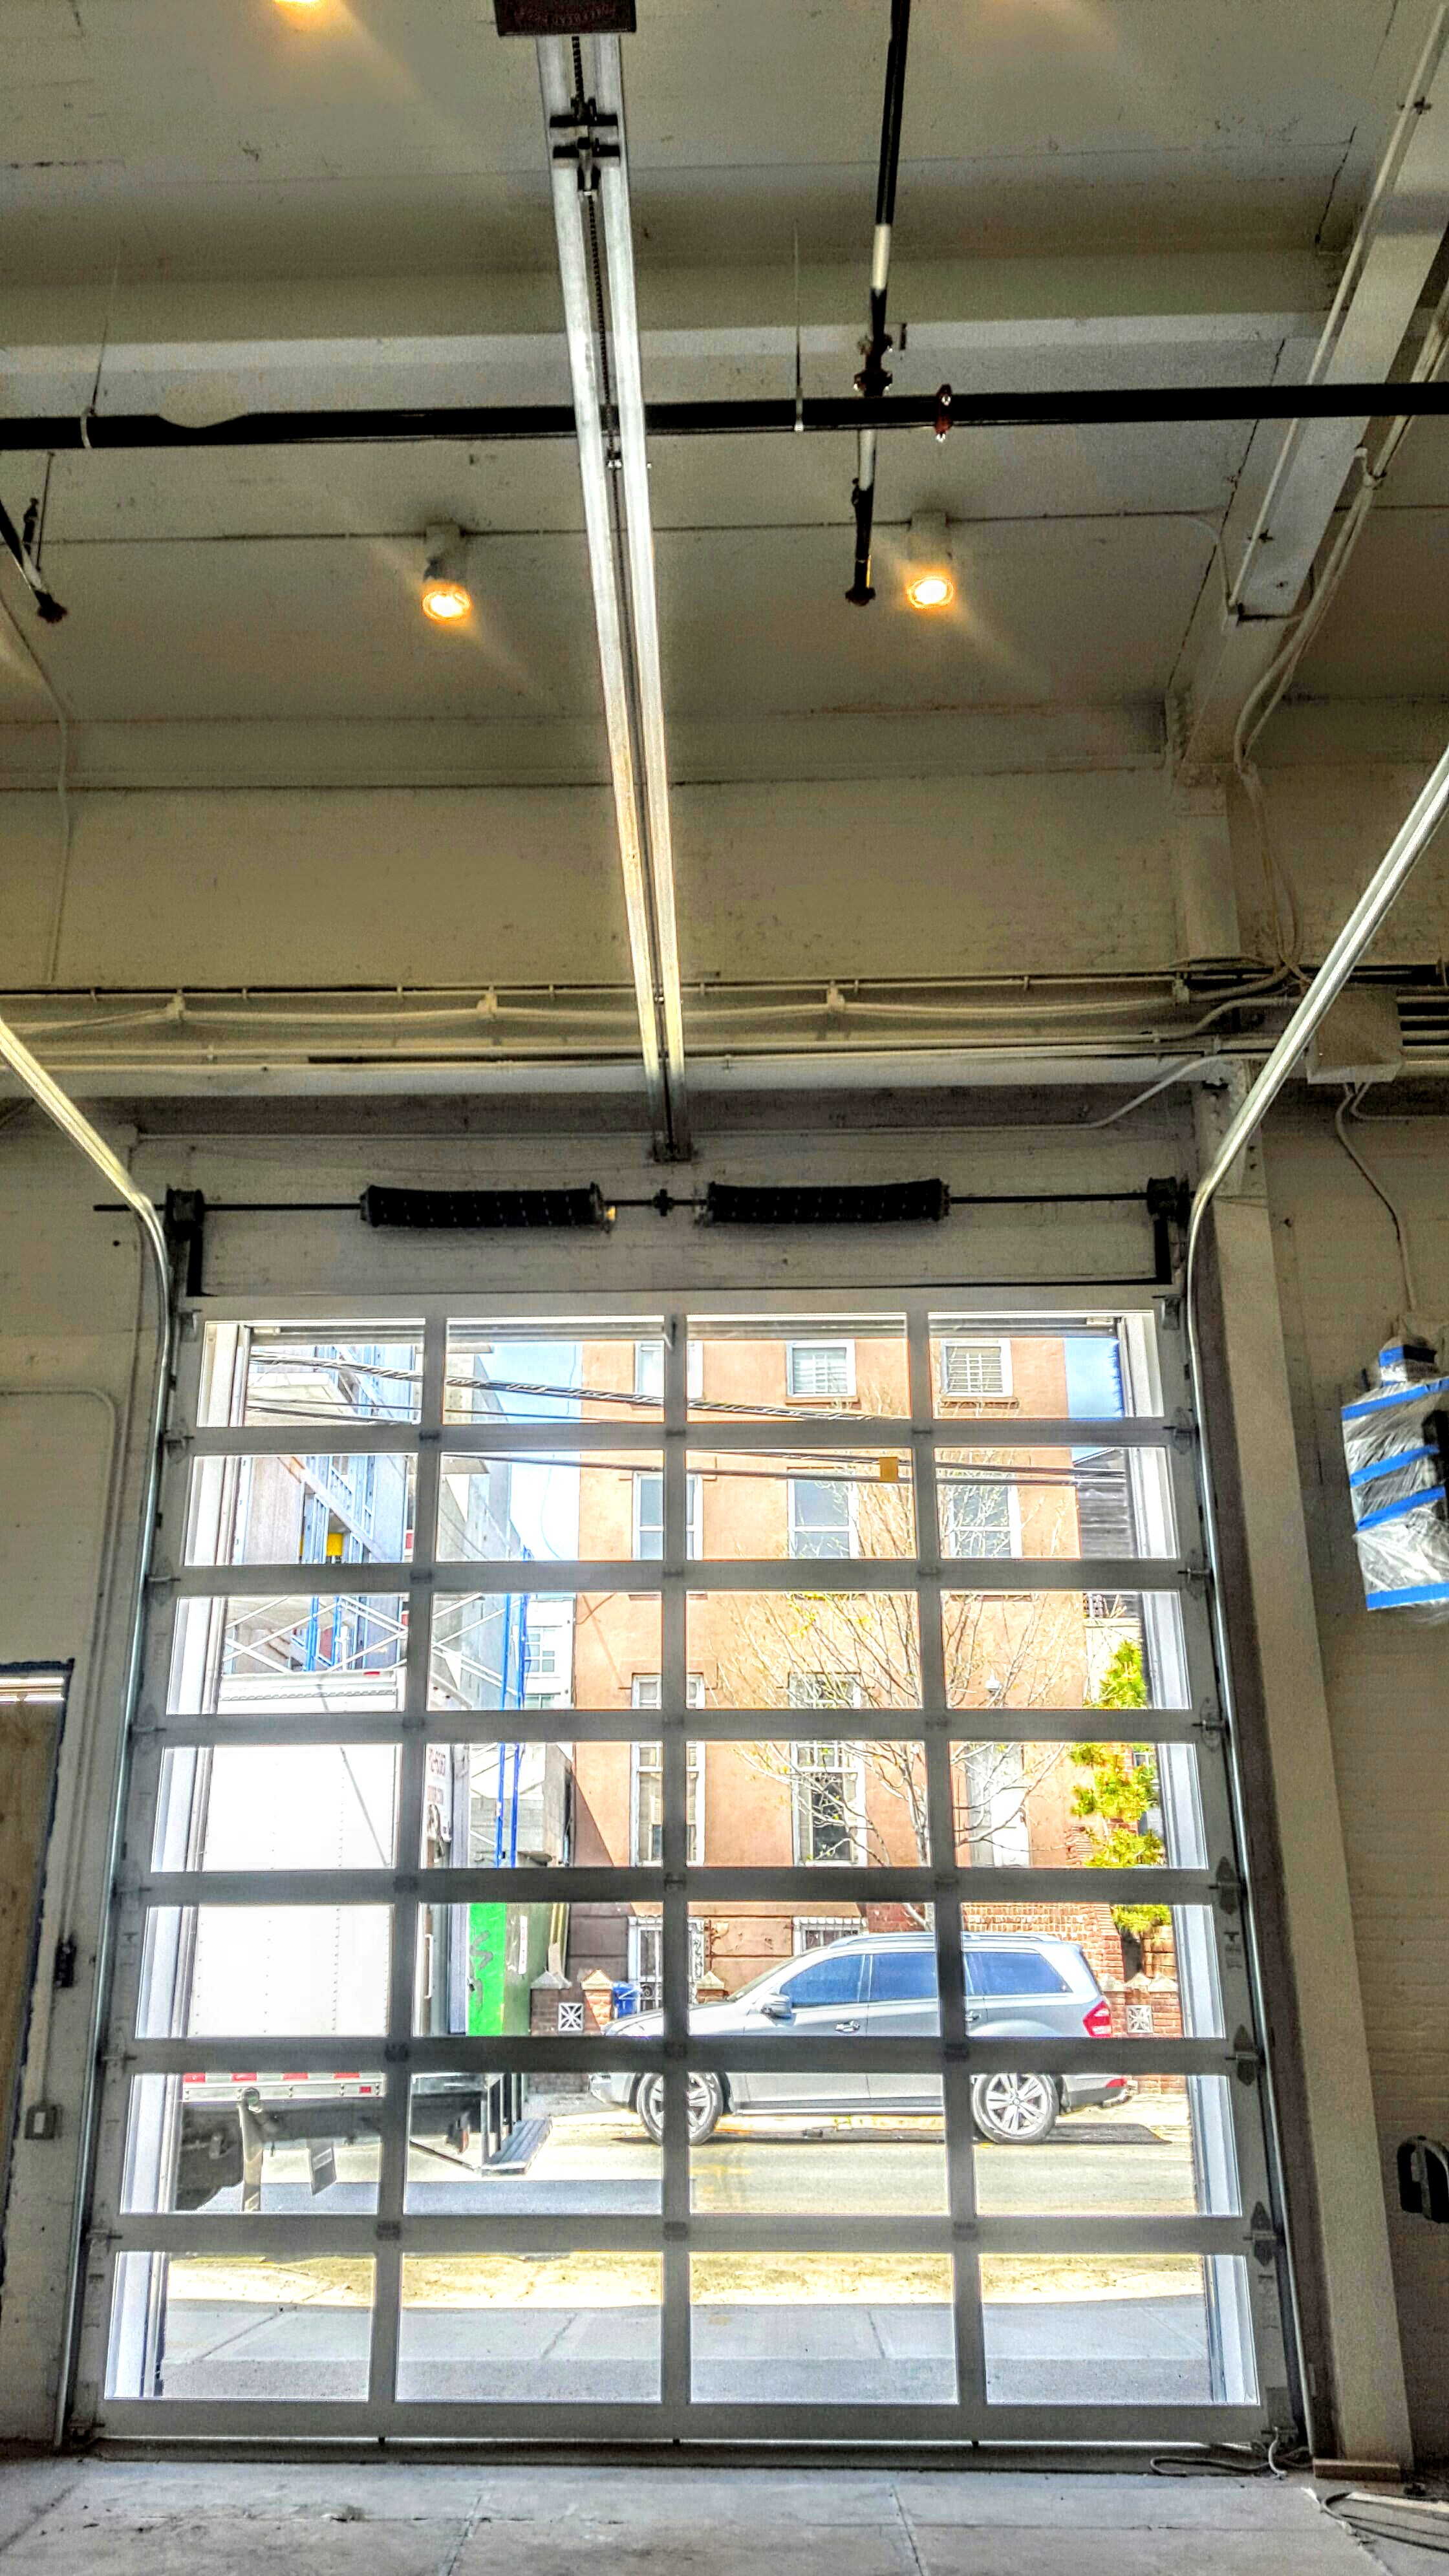 Project Snapshot Fast Ashley Photography Work Shop Studio Interior View  Glass Rollup Garage Doorg Lymitrio Images